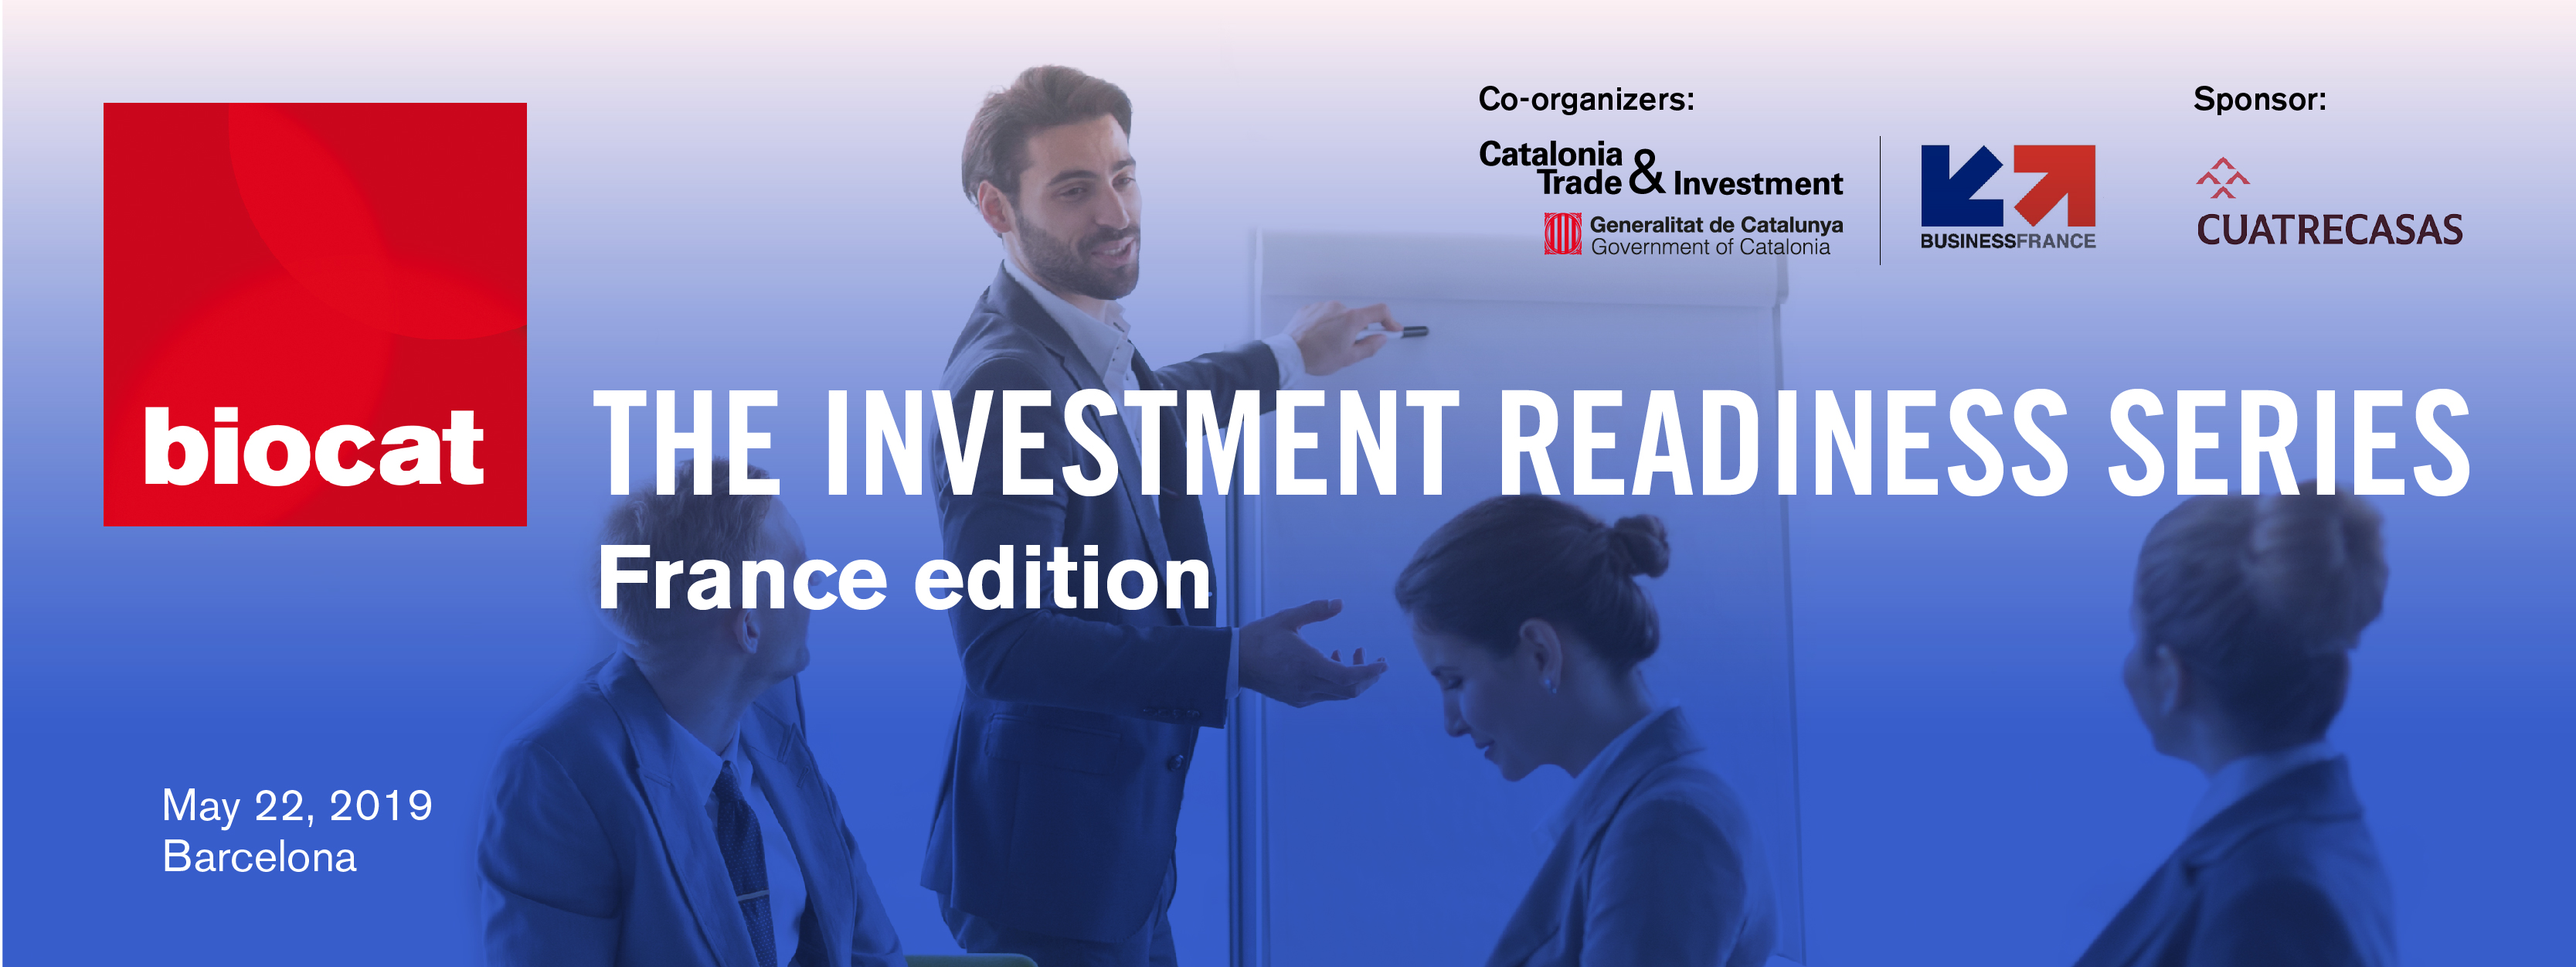 The Investment Readiness Series - France Edition